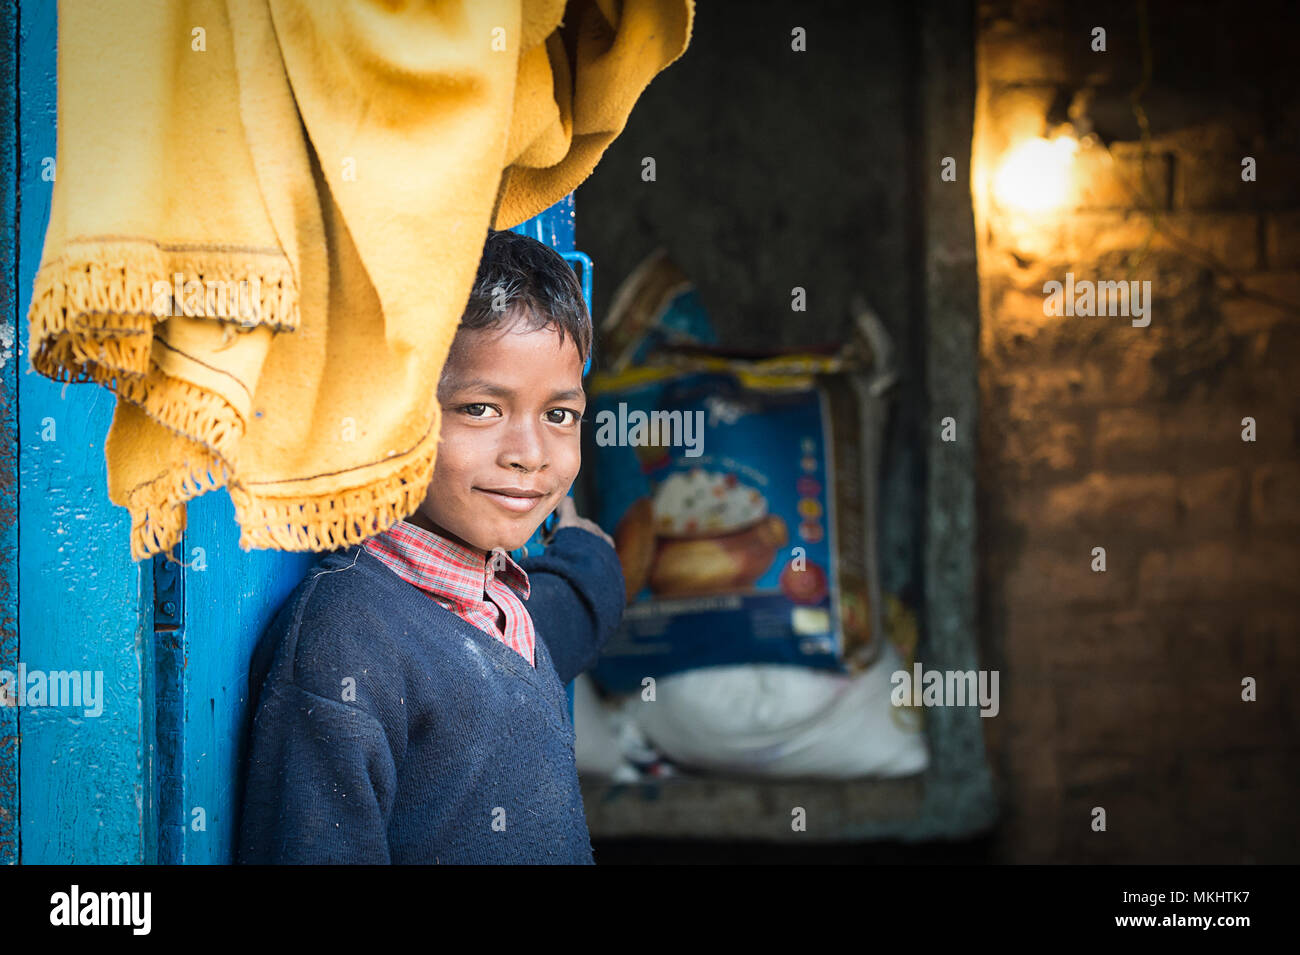 RAJASTHAN - INDIA - 06 JANUARY 2018. Portrait of a young boy in front of his small house. Picture taken from a rural village in Rajasthan. India. - Stock Image